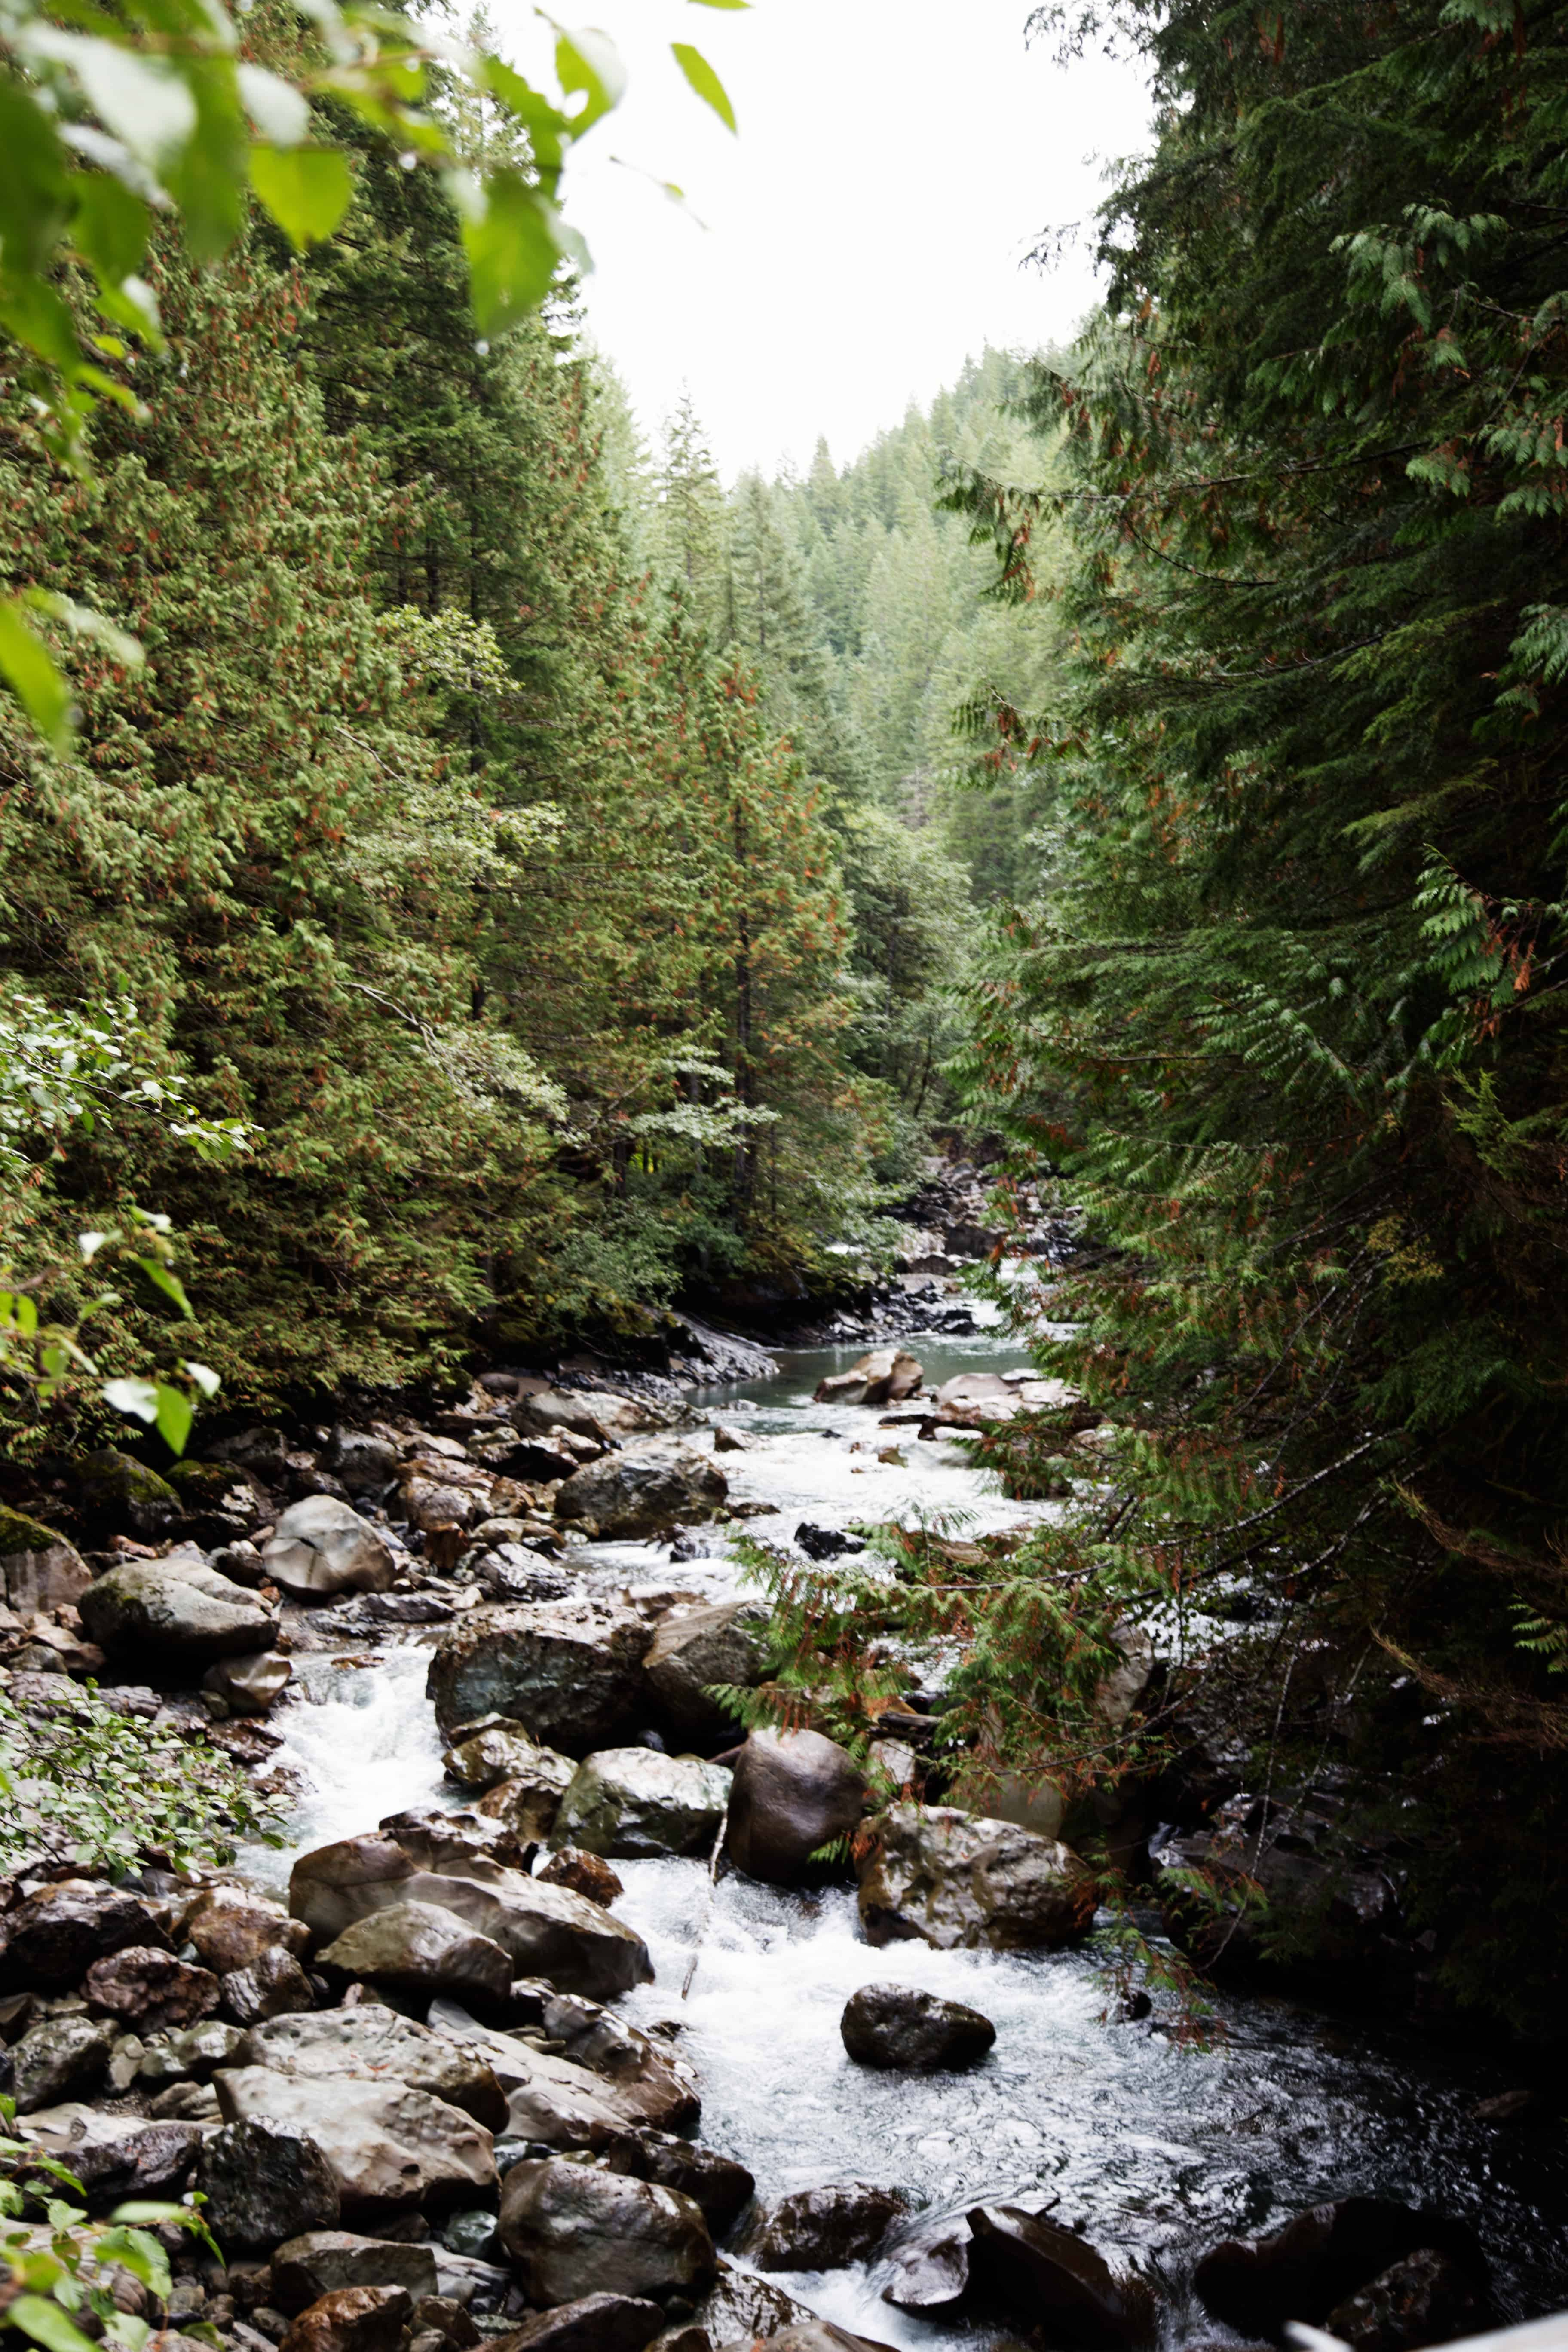 Nooksack Falls in the North Cascades National Park is an easy outdoor adventure in Glacier, WA that's a perfect day trip for all ages and abilities. Especially with these five tips for outdoor family adventures! North Cascades National Park   Nooksack Falls   Mount Baker